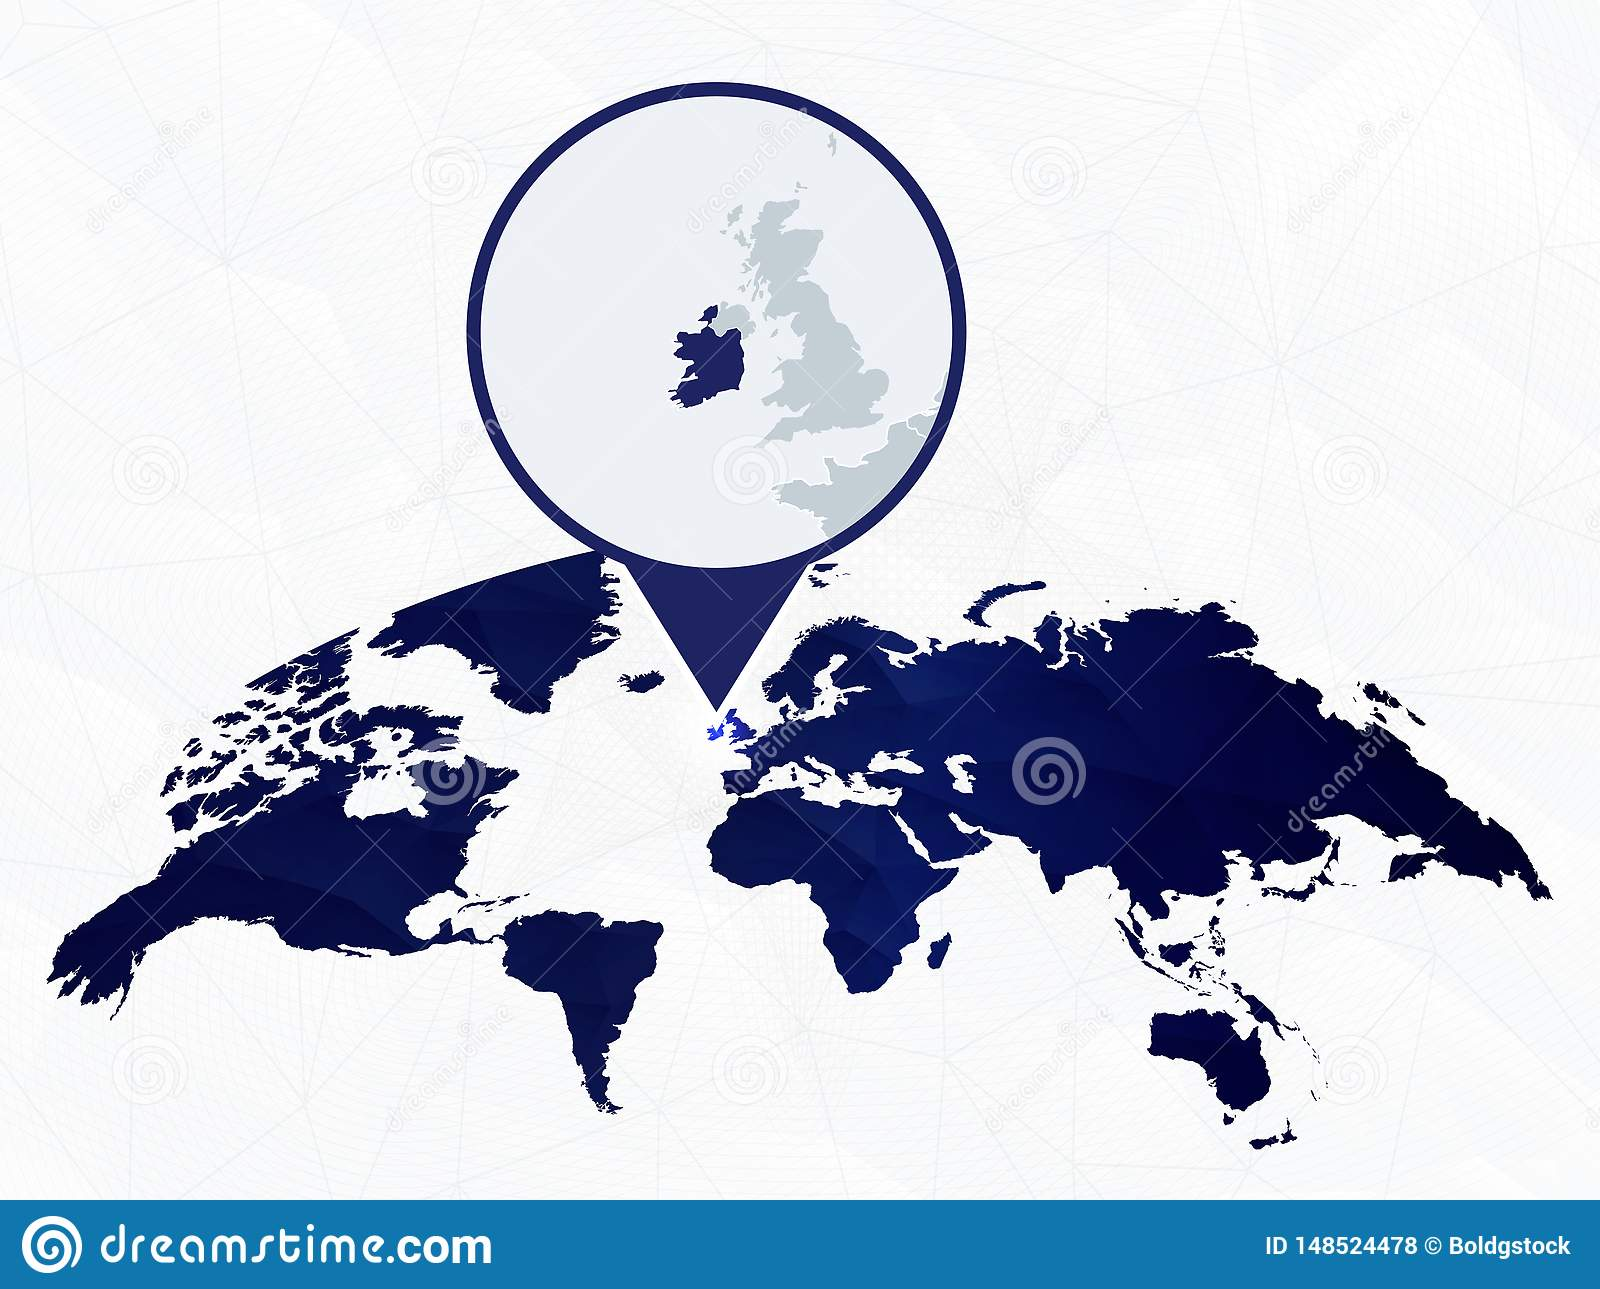 Ireland Detailed Map Highlighted On Blue Rounded World Map ...